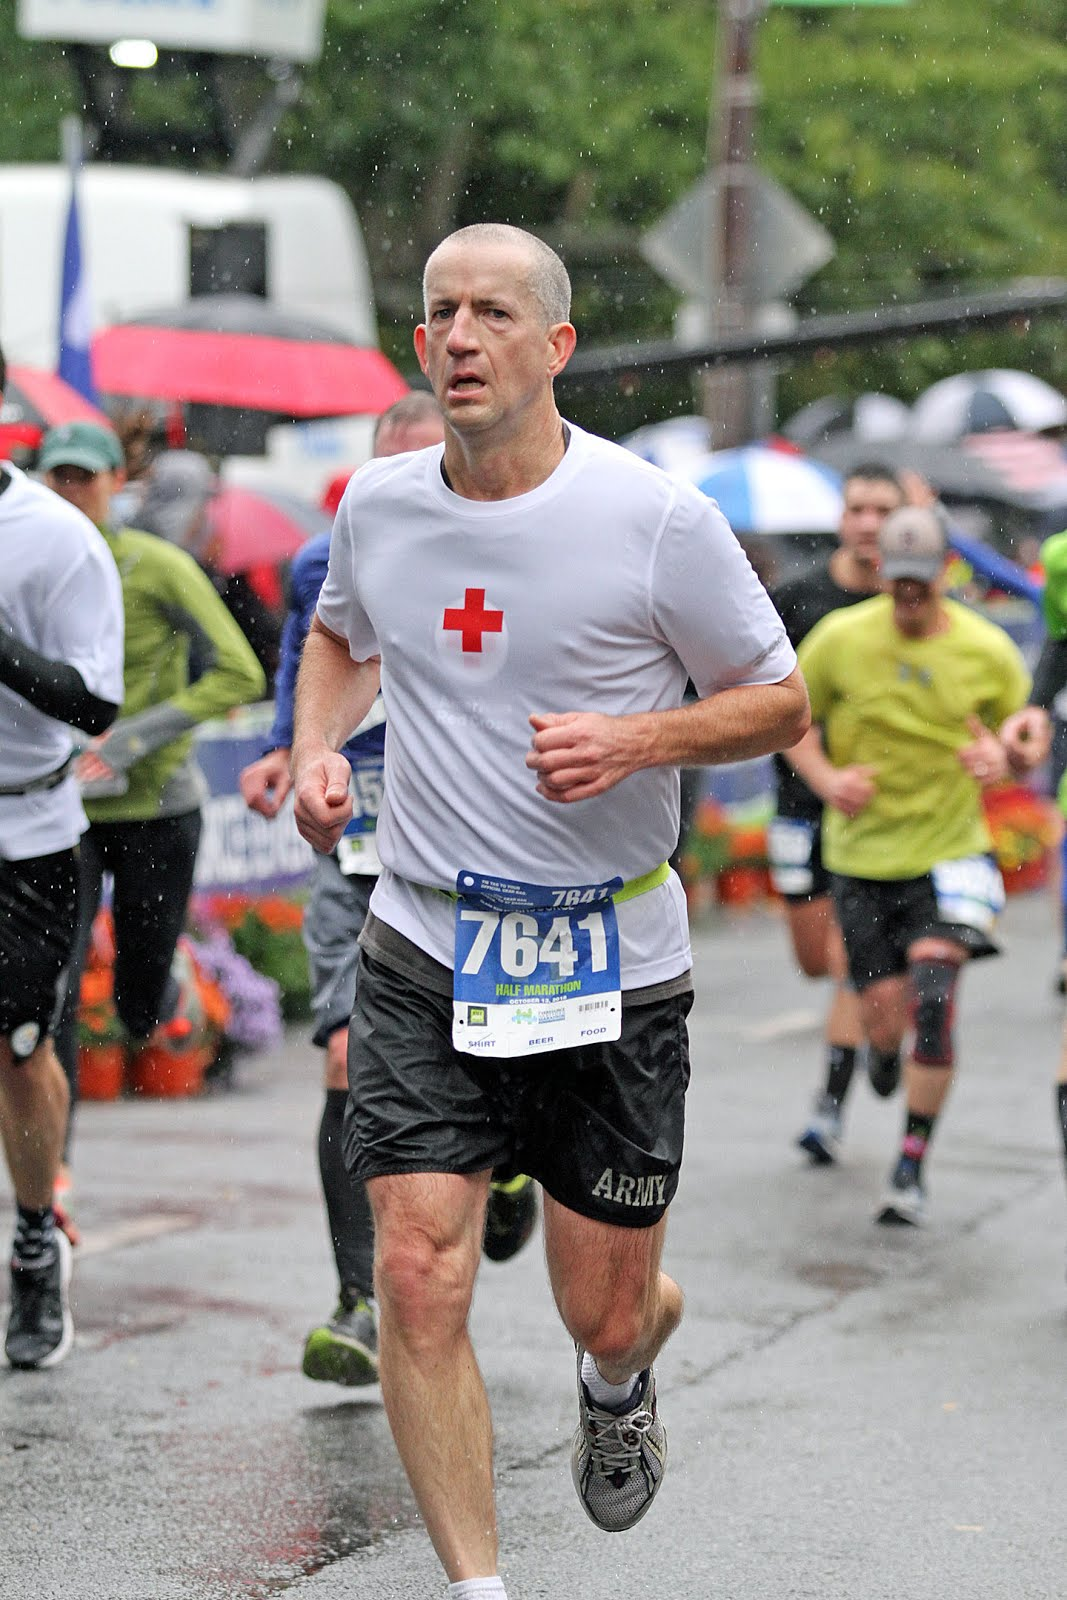 d34bbdcf886dc American Red Cross Volunteer runs to raise funds for the American Red Cross